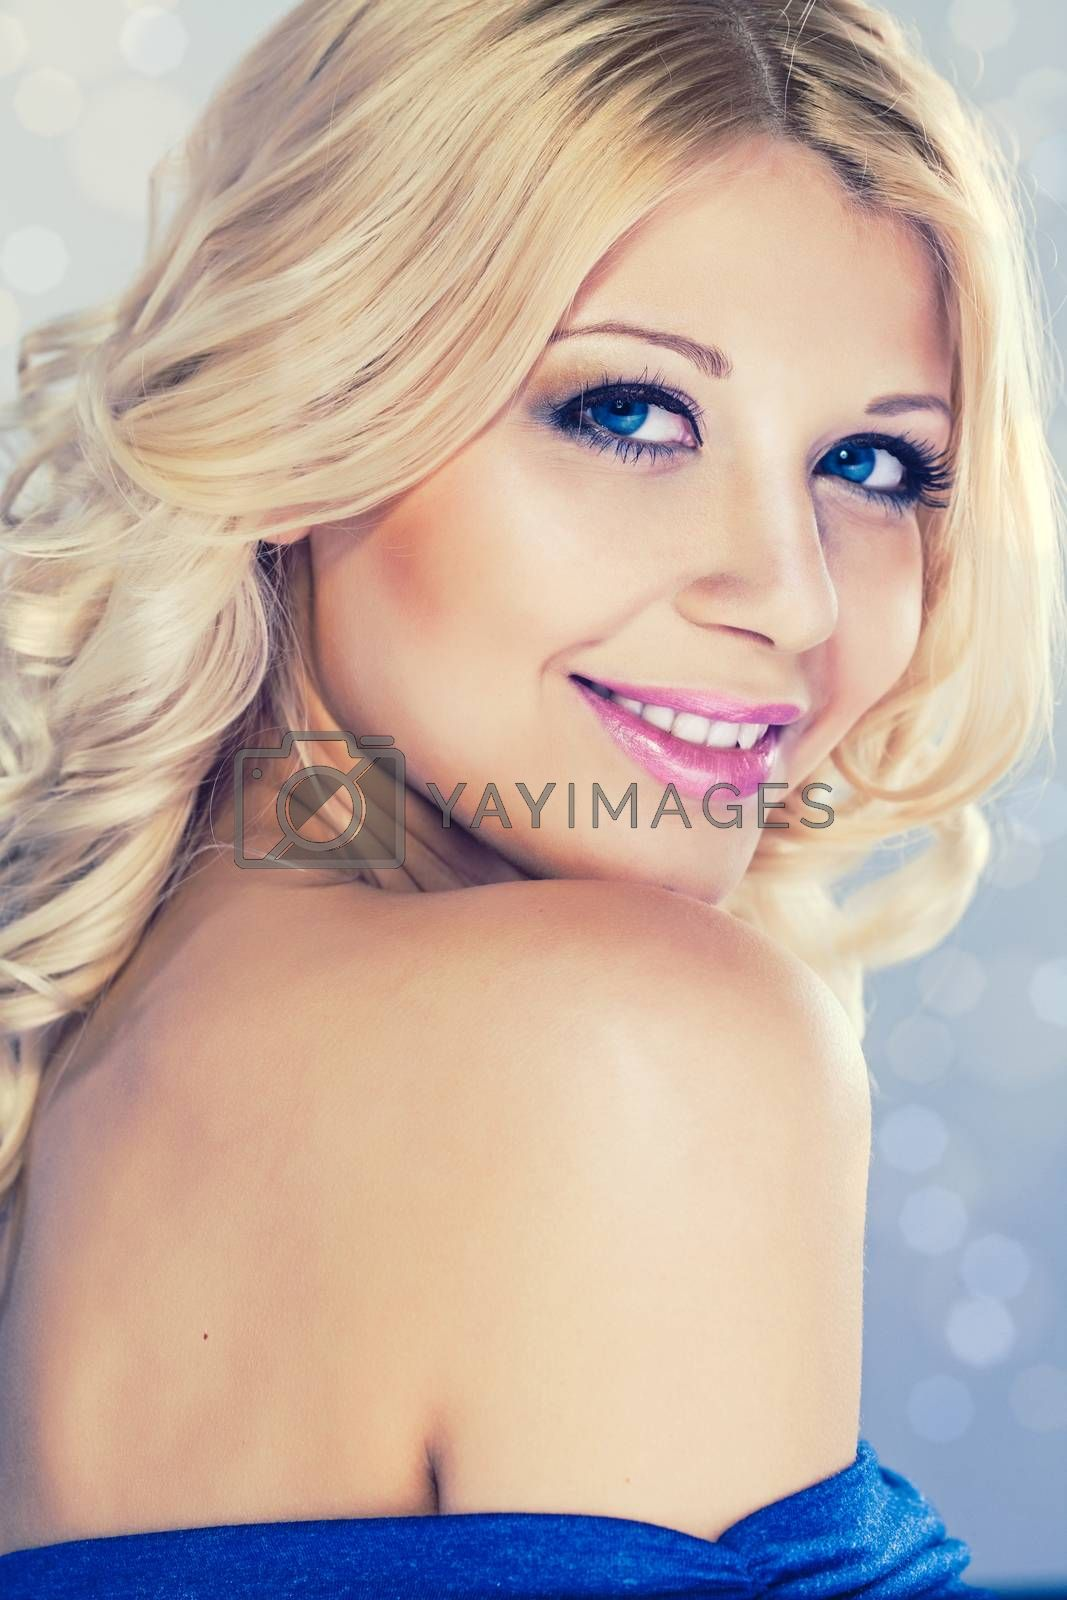 Royalty free image of Beauty by alenkasm